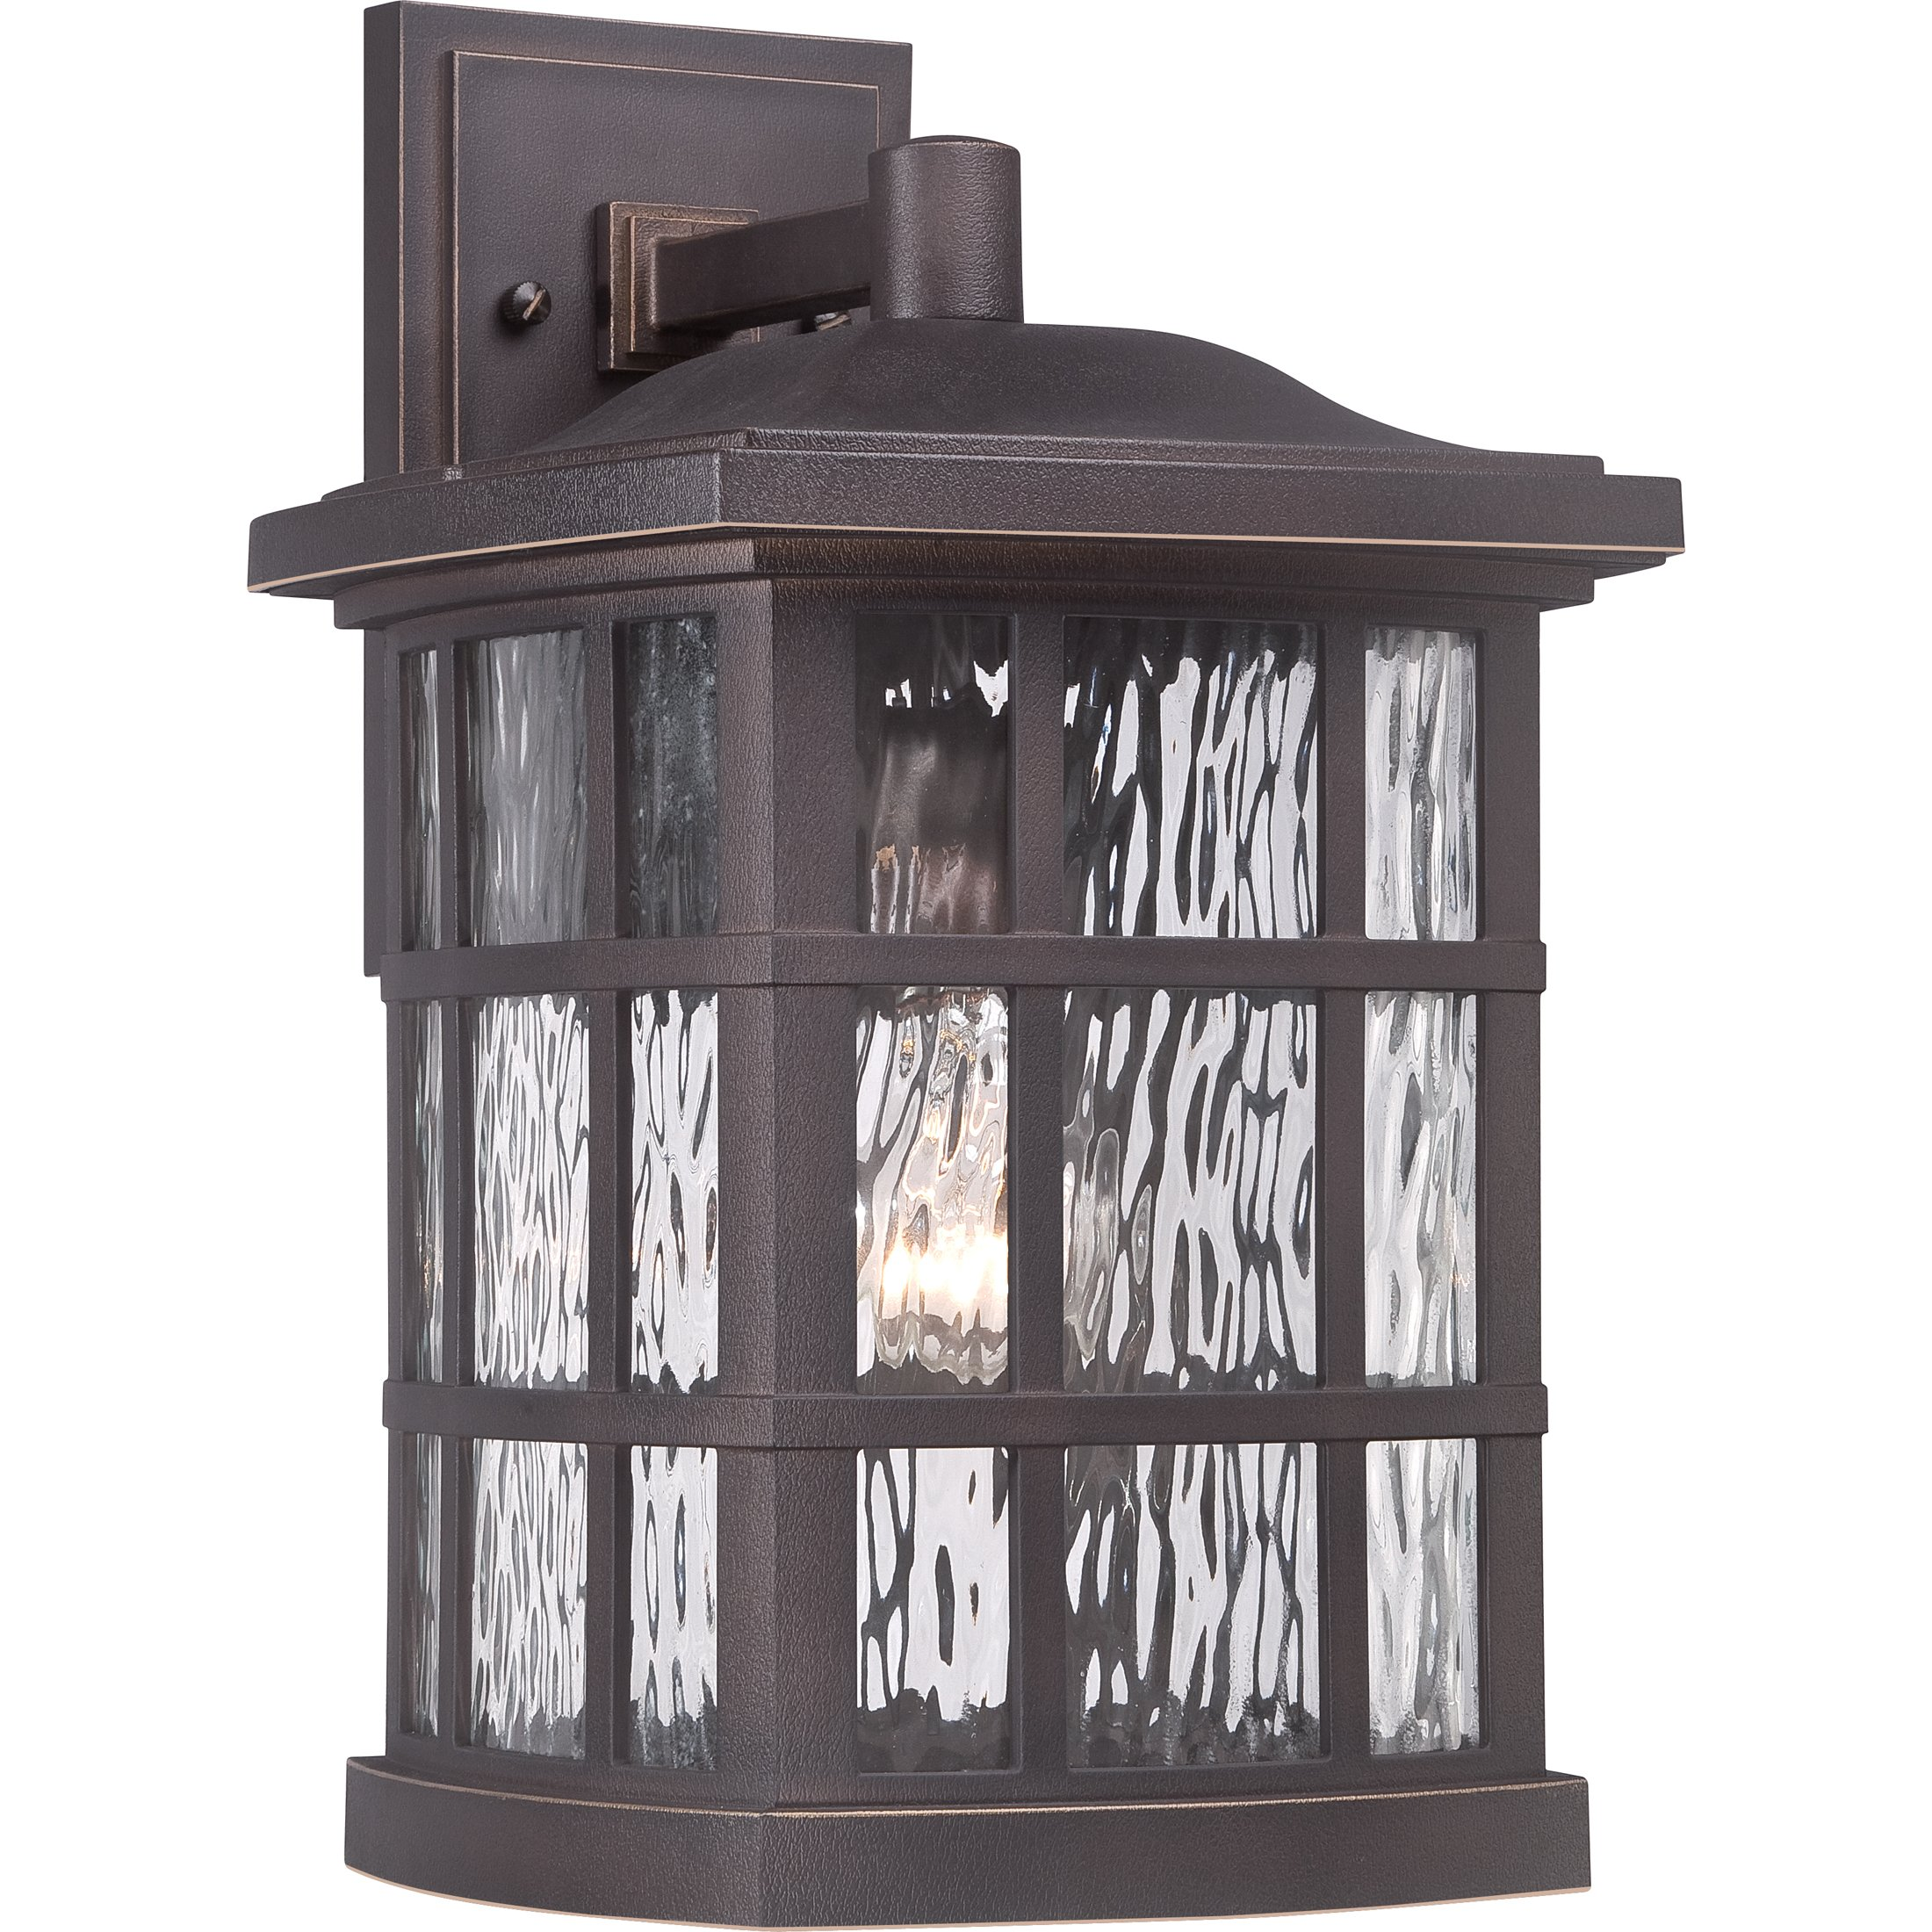 Quoizel SNN8409PN Stonington 1-Light Outdoor Lantern, Palladian Bronze